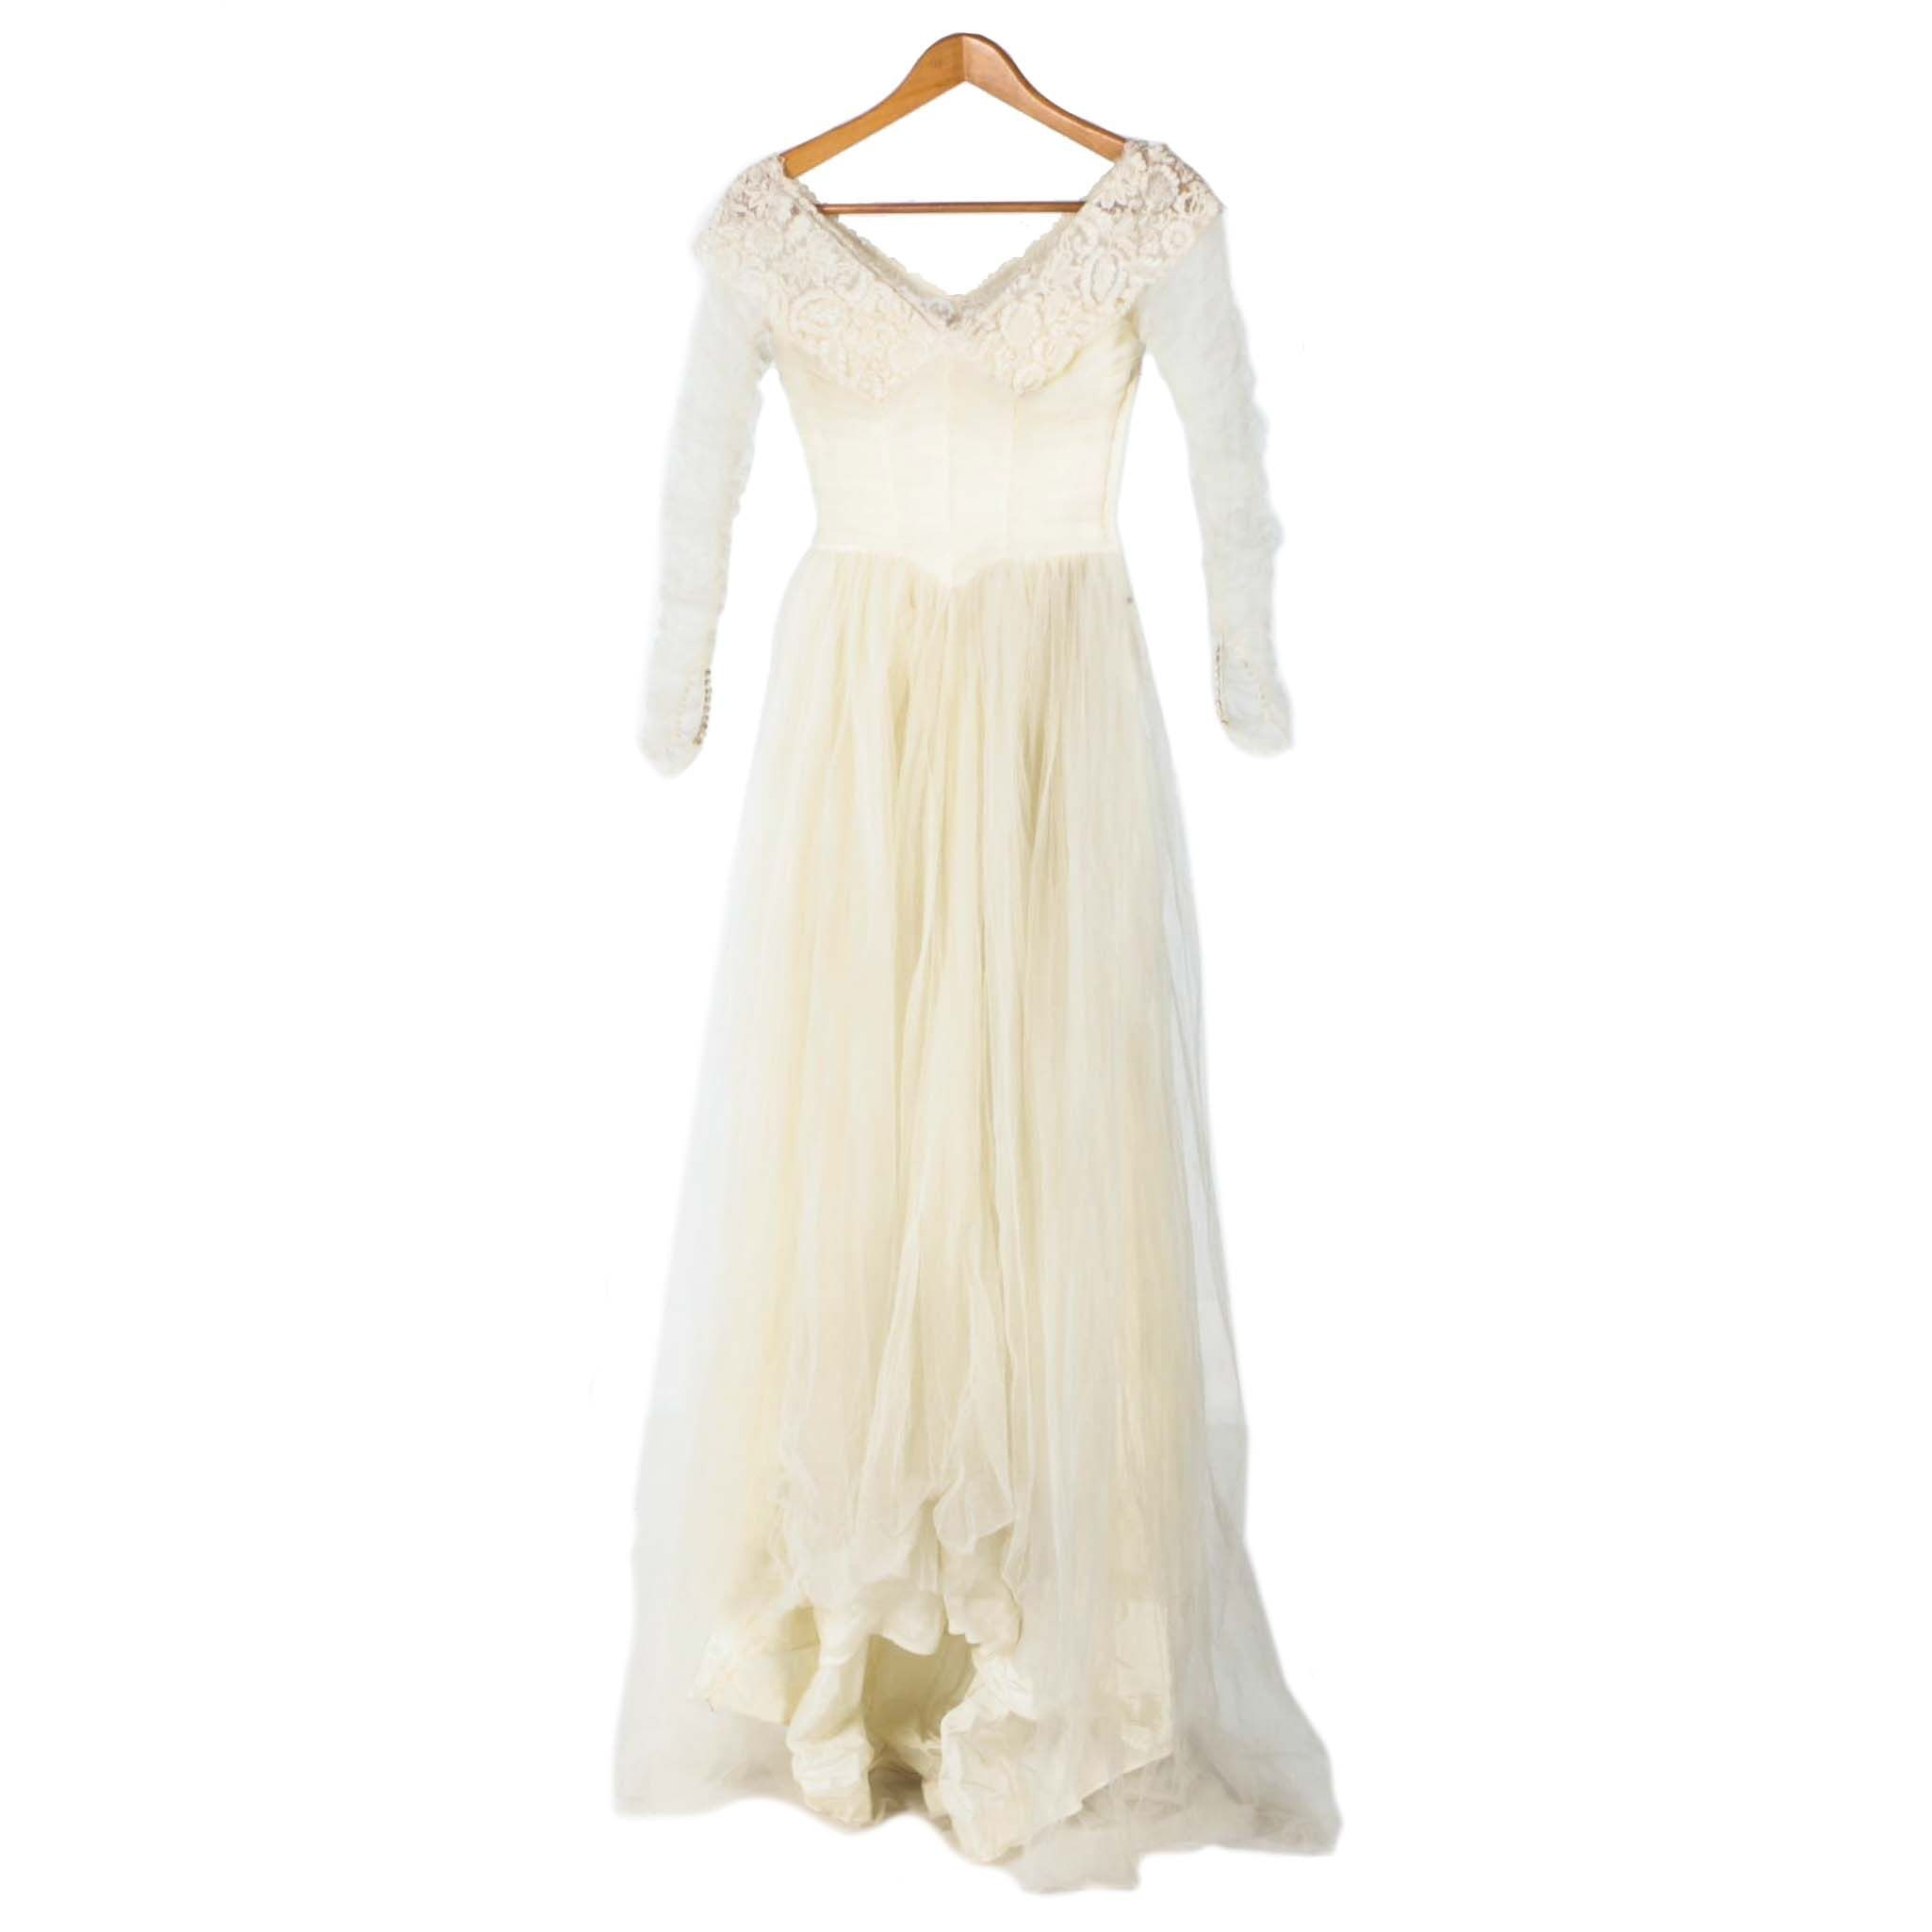 Vintage Tulle and Satin Wedding Dress by Bonwit Teller